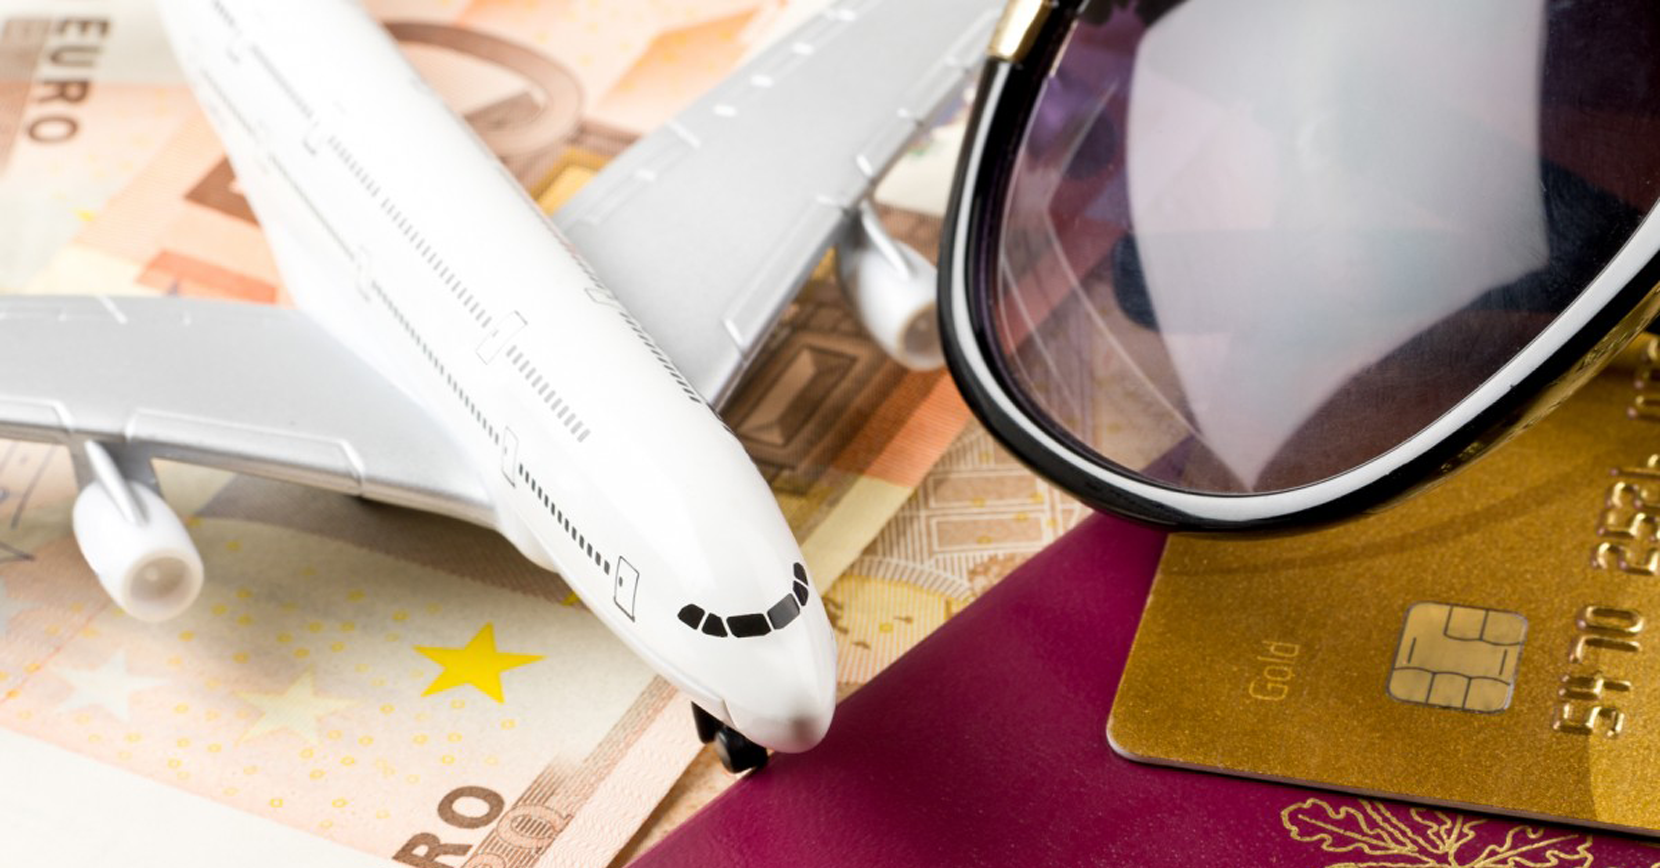 3 WAYS TO USE YOUR CREDIT CARD WISELY WHEN YOU TRAVEL OVERSEAS